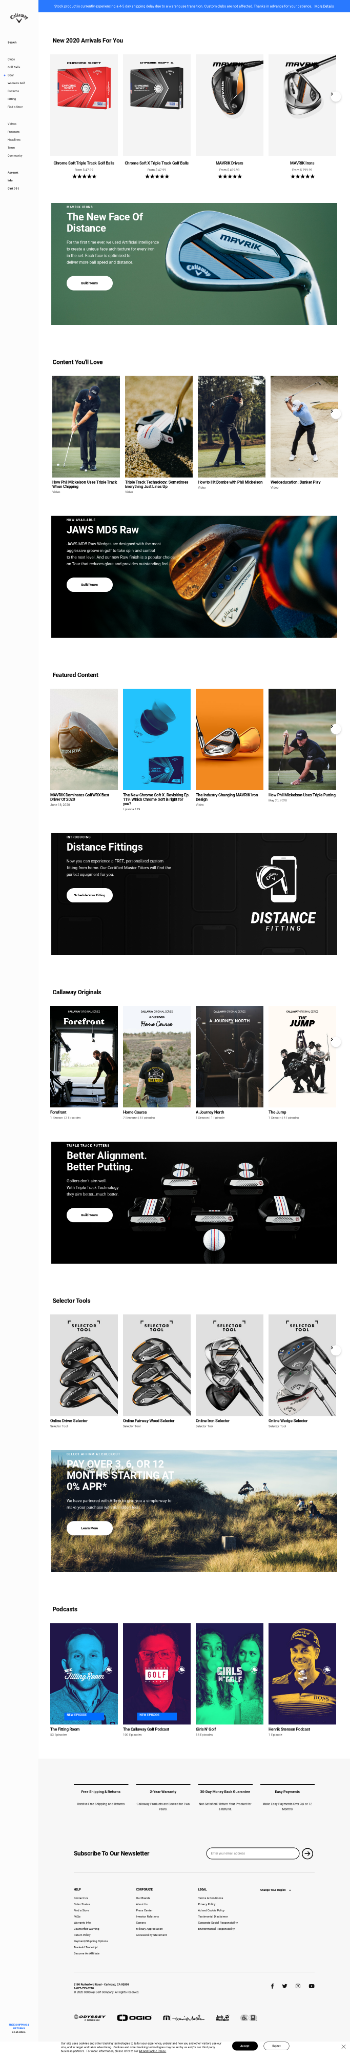 Callaway Golf Company Website Screenshot